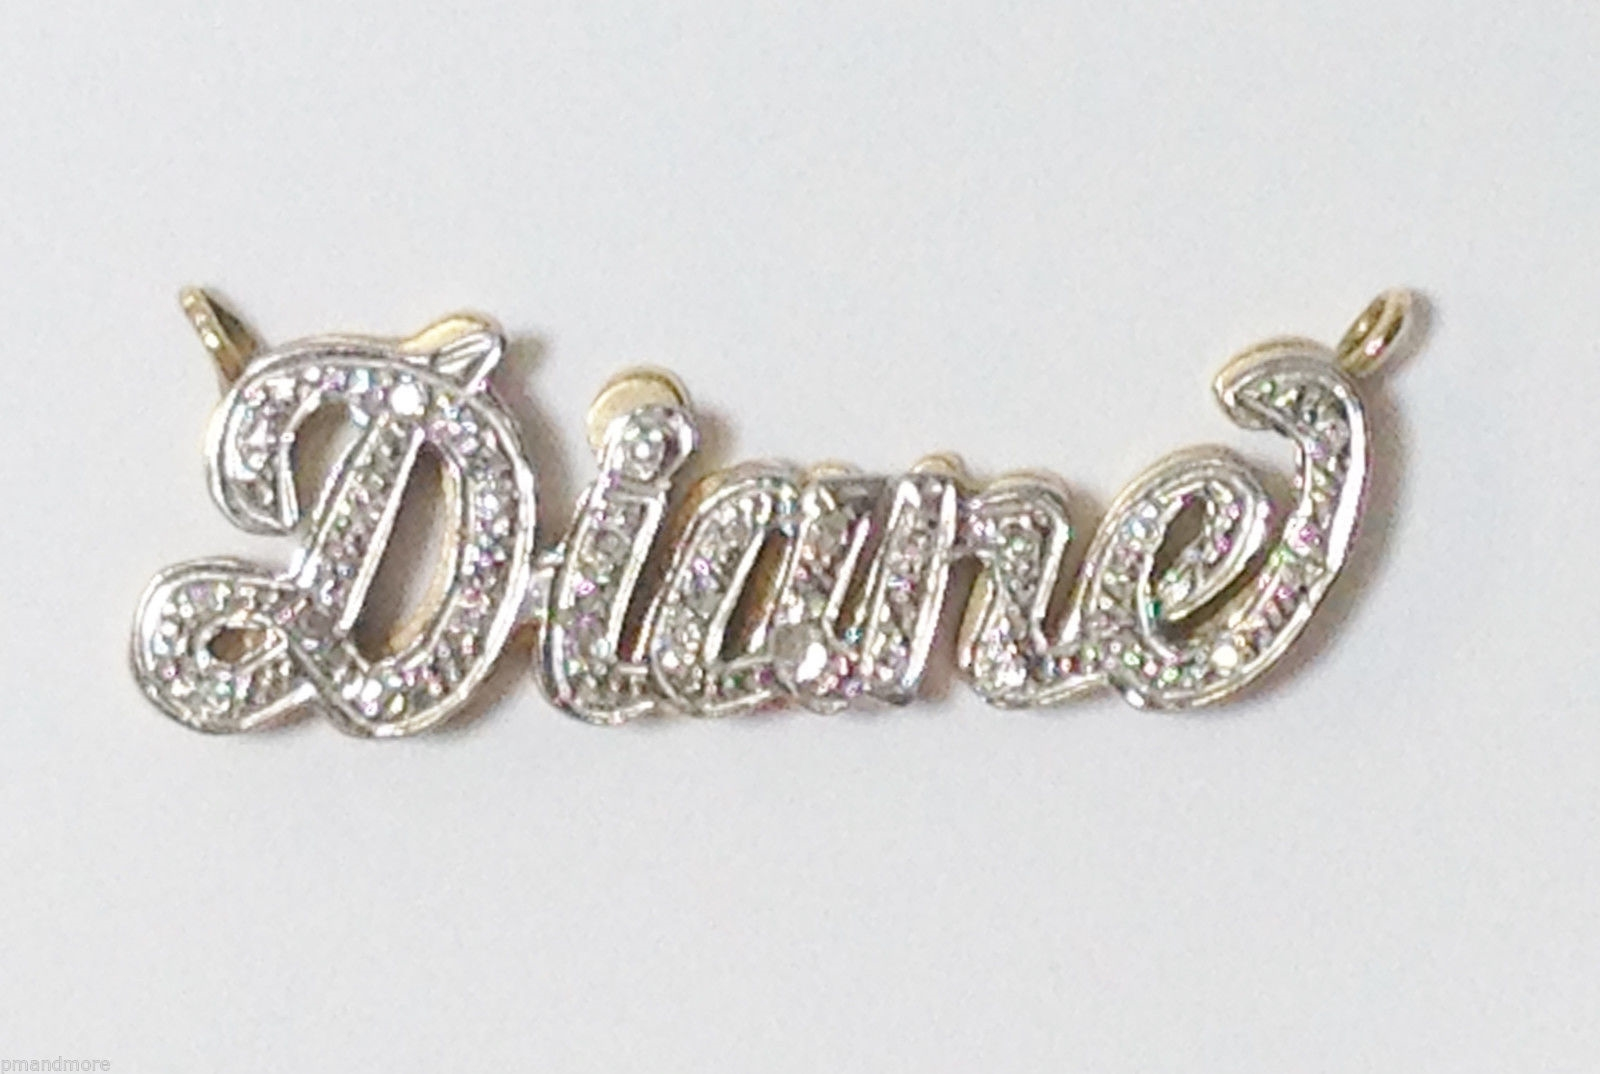 PERSONALIZED DIANE - 14K  SOLID YELLOW & WHITE GOLD & DIAMOND NAME PLATE PENDANT